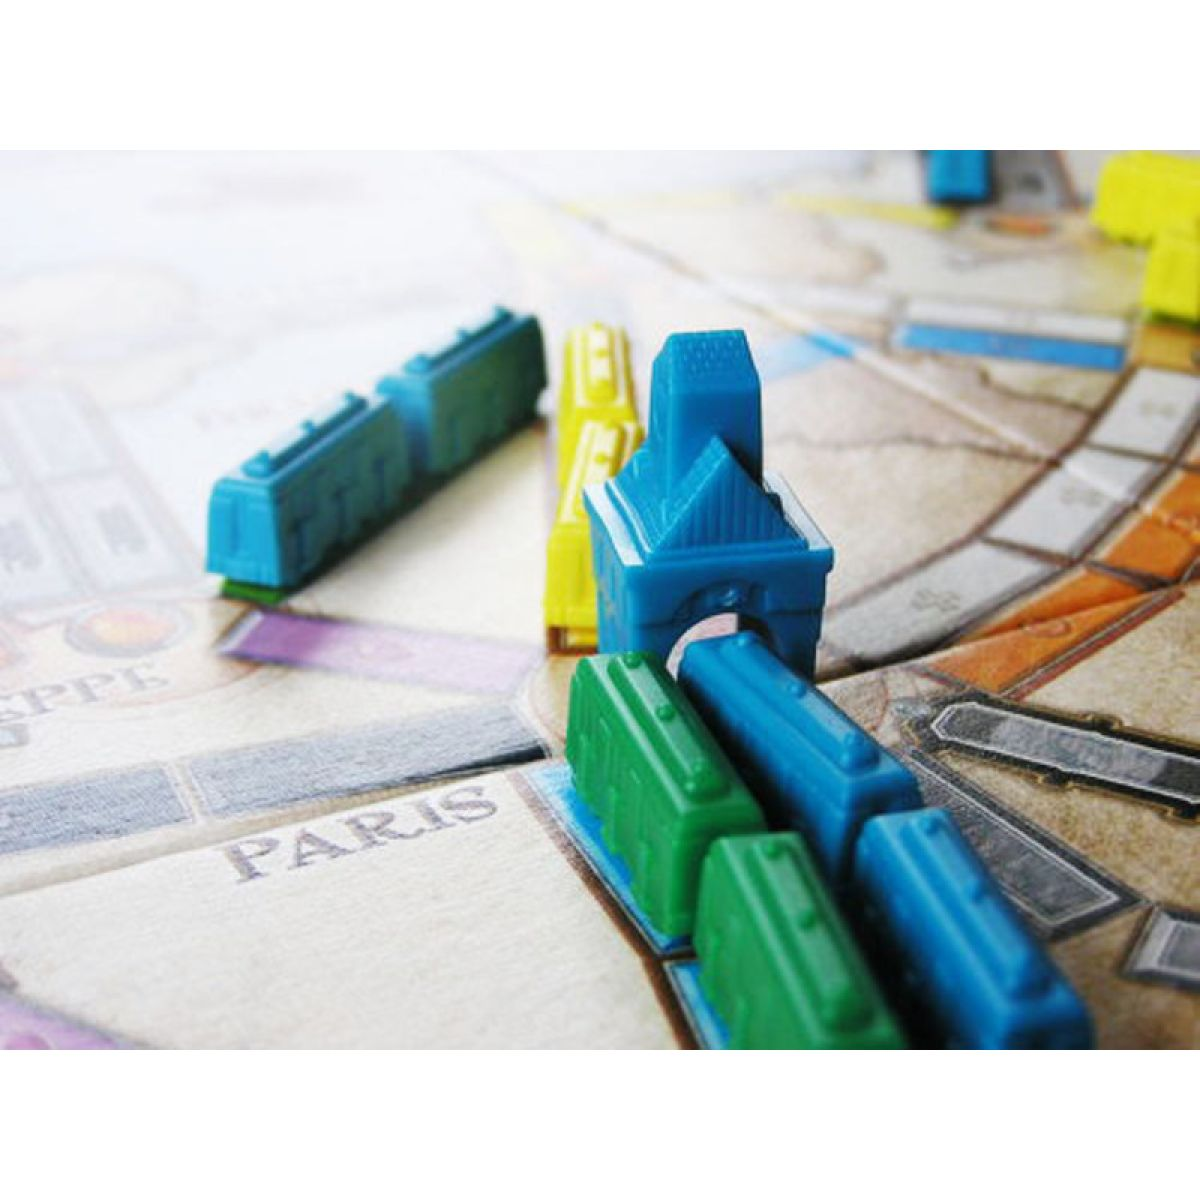 ADC Blackfire Ticket to Ride - Europe #6